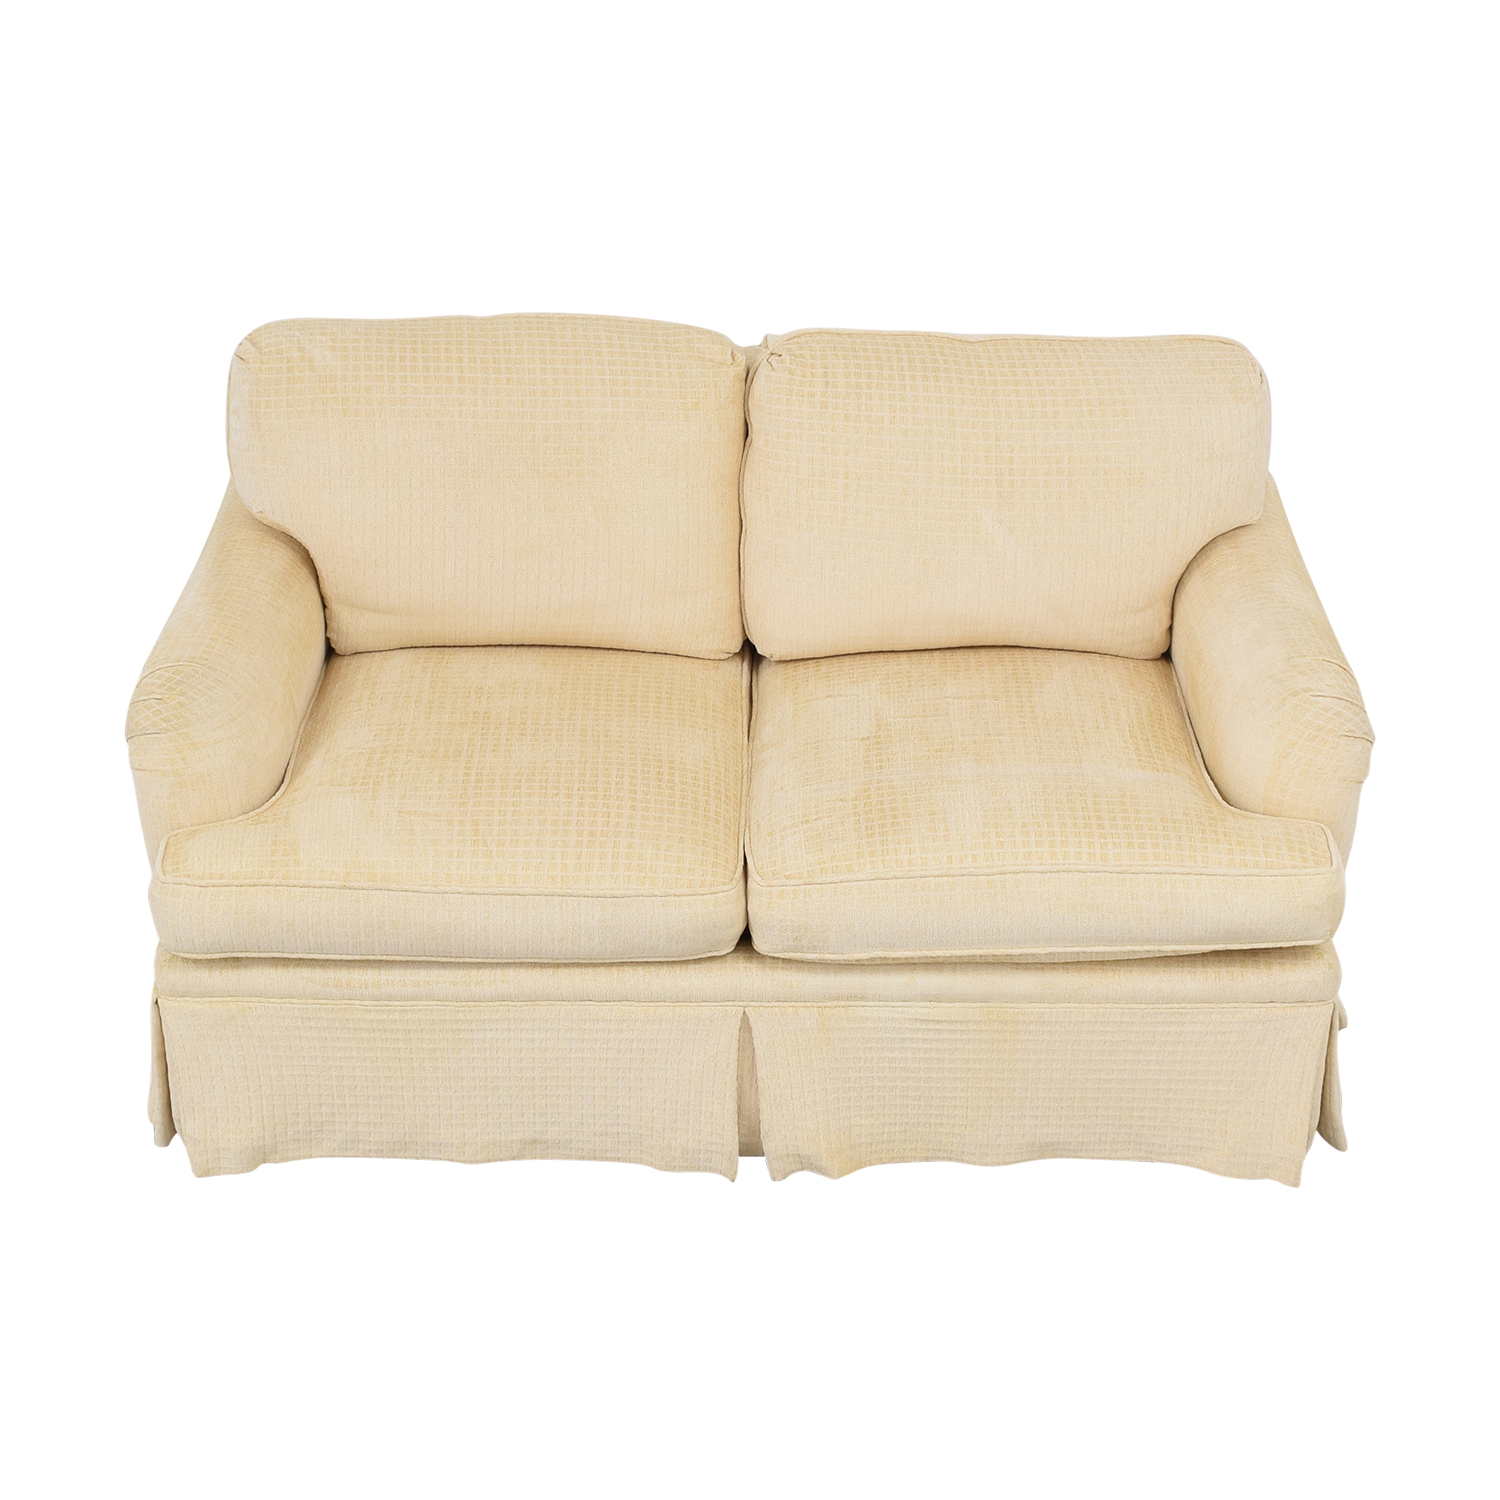 Mason-Art Mason-Art Upholstered Loveseat price